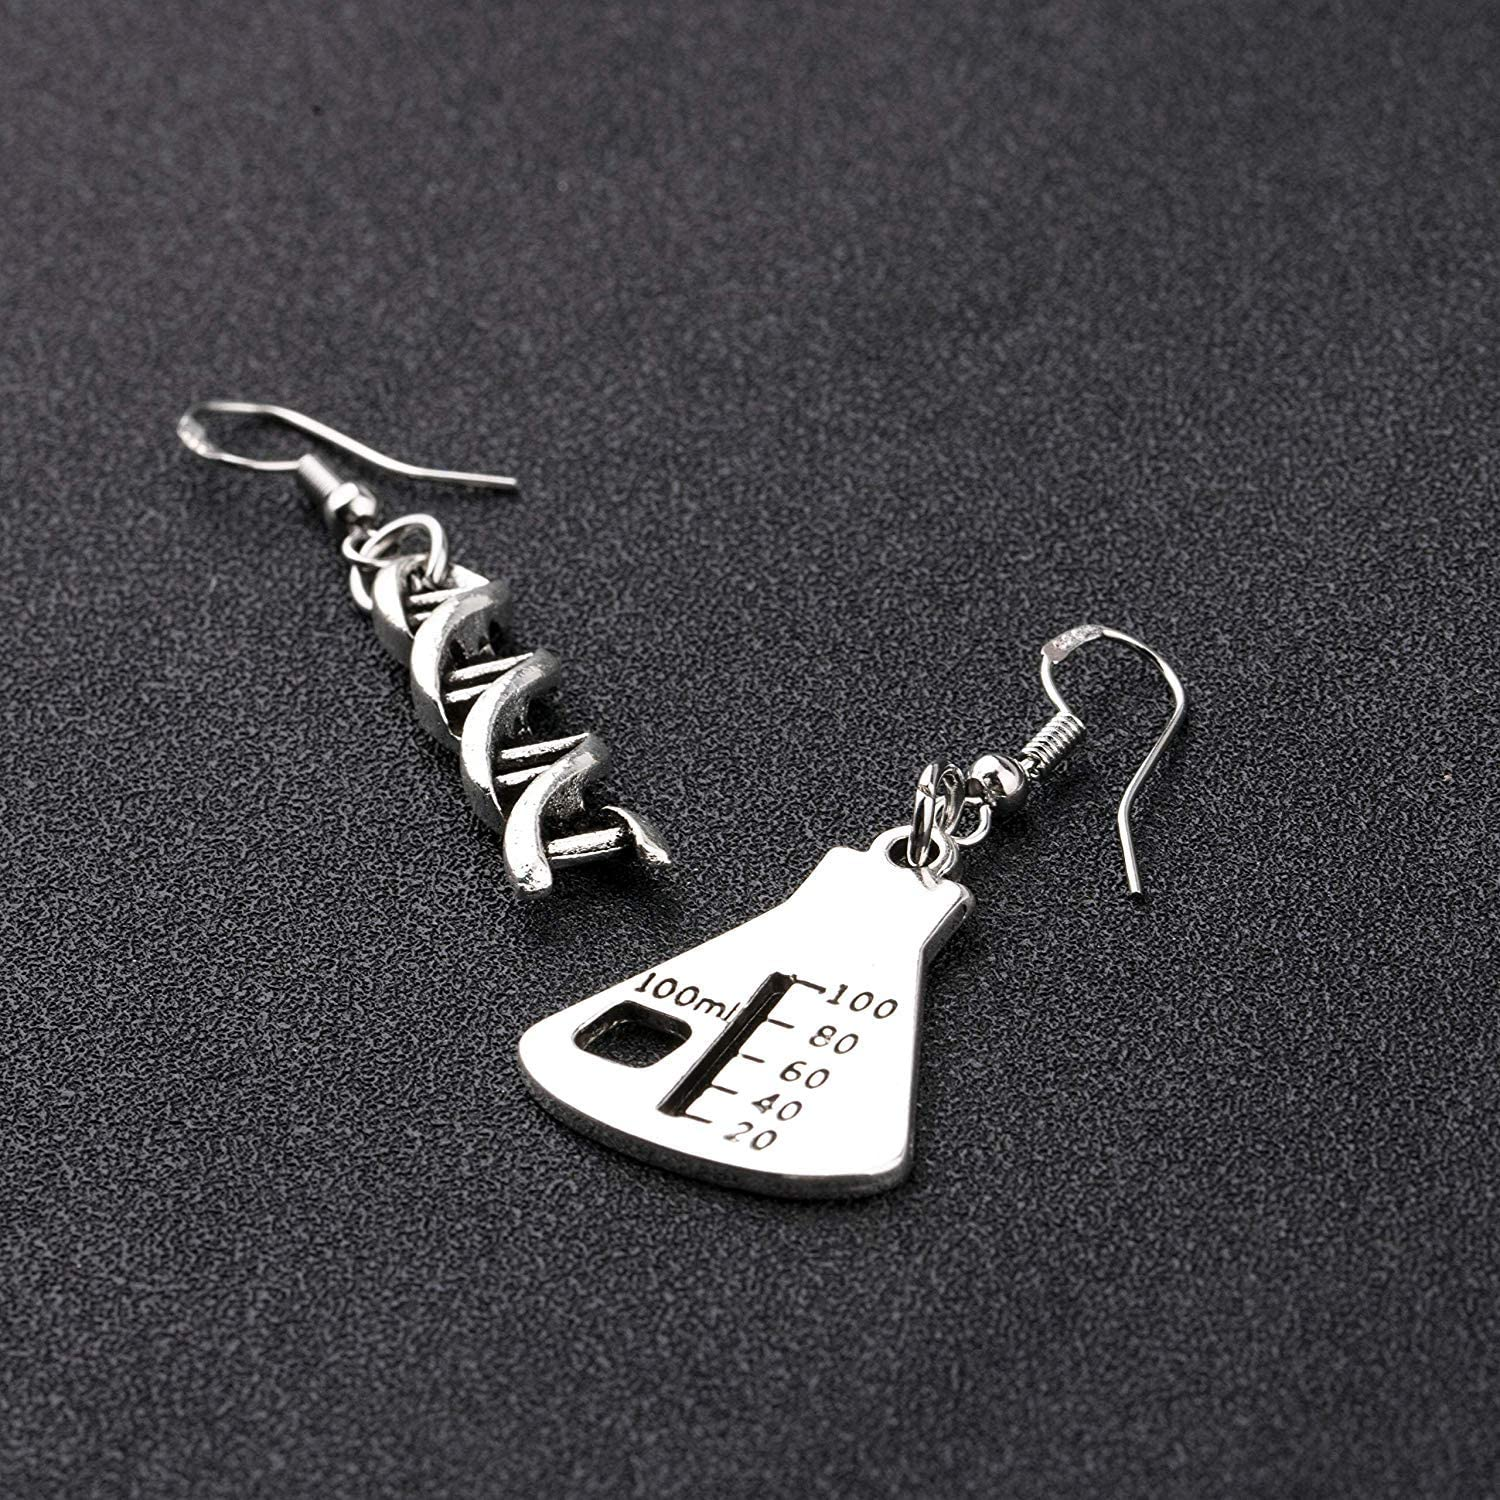 AKTAP DNA Earrings Science Flask Earrings DNA Double Helix Necklace Science Jewelry Chemistry Gifts Chemistry Biology DNA Lab Tech Charm/Earrings